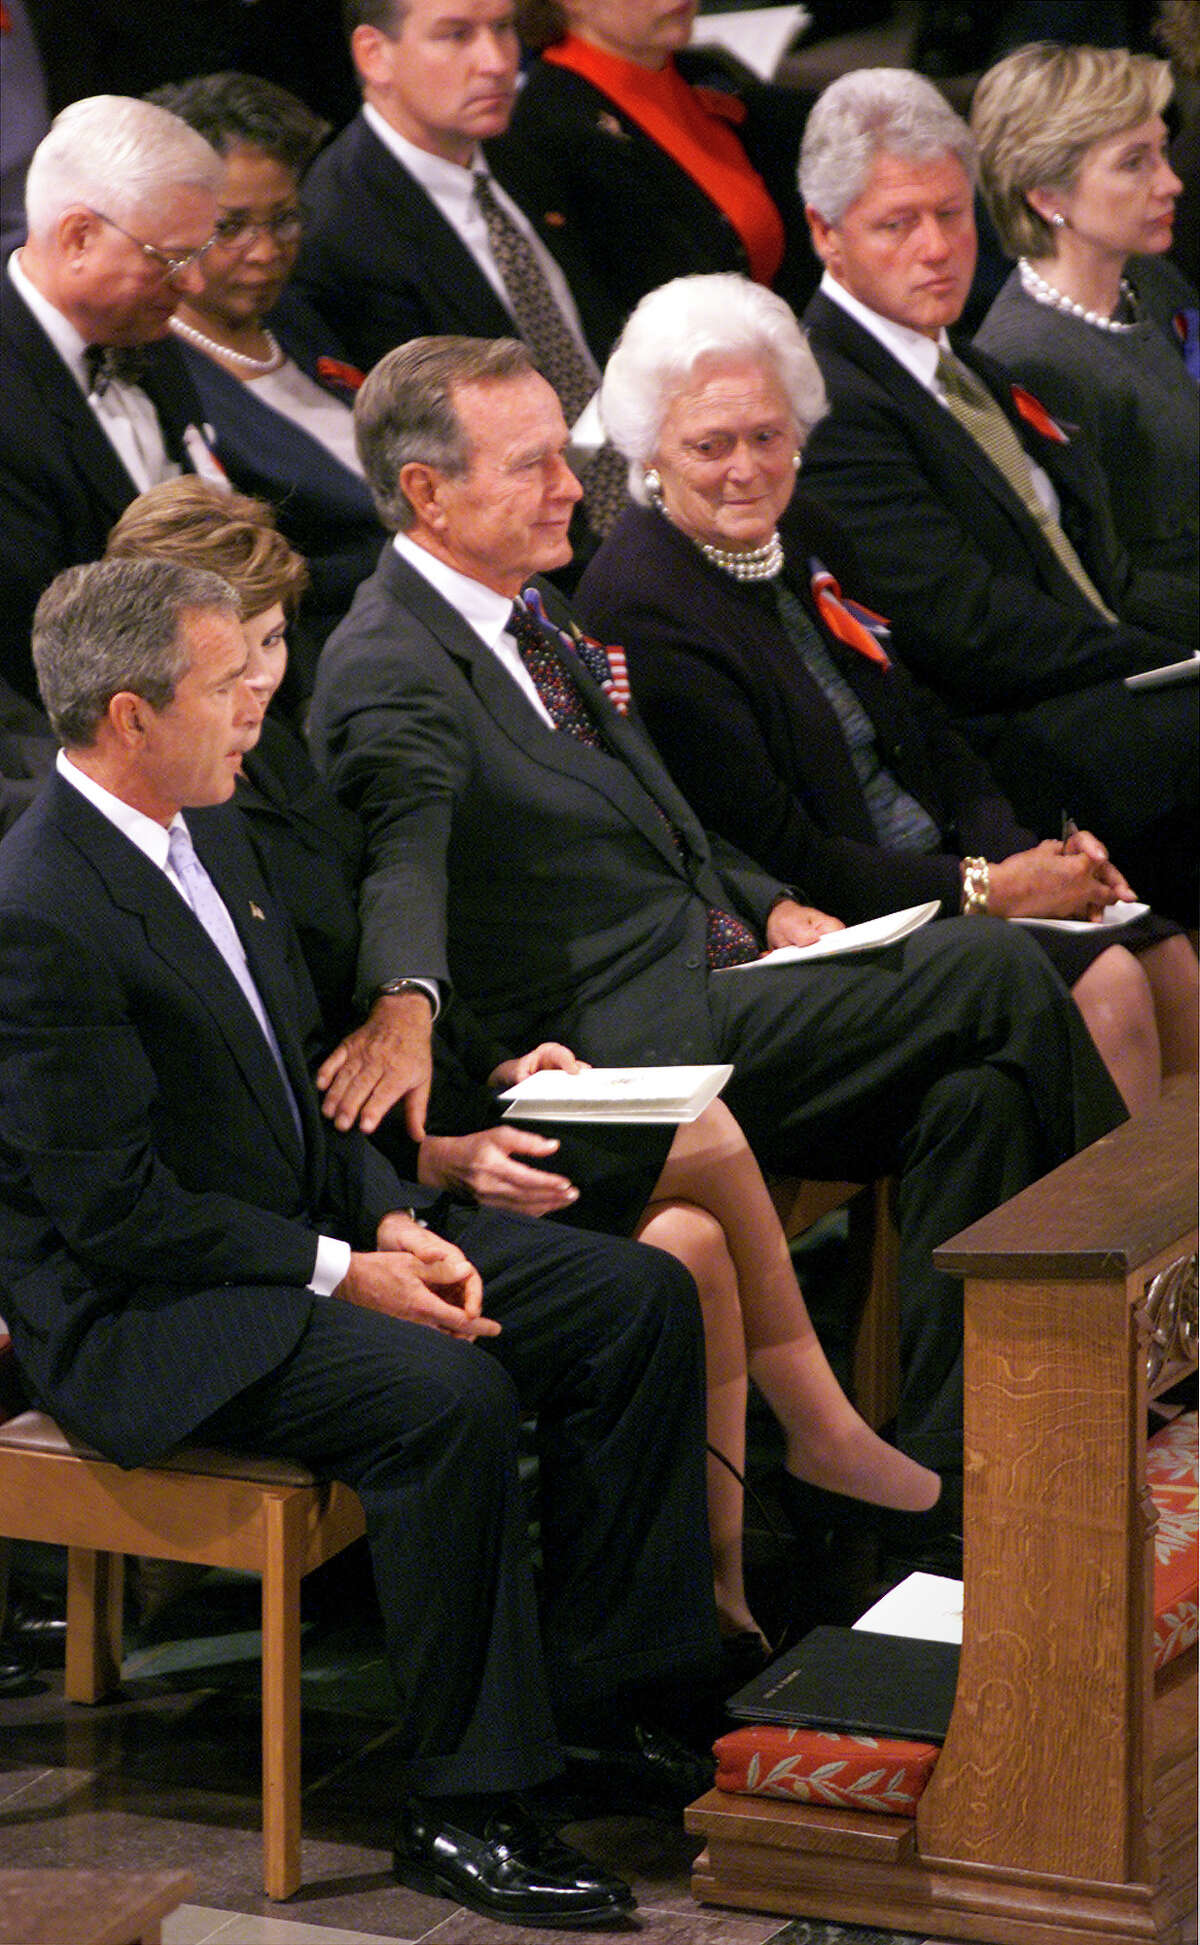 President George W. Bush, left, receives a comforting pat on the arm from his father, former President George H.W. Bush, after speaking at a prayer service remembering the victims of Tuesday's terrorist attacks on Friday, September 14, 2001.